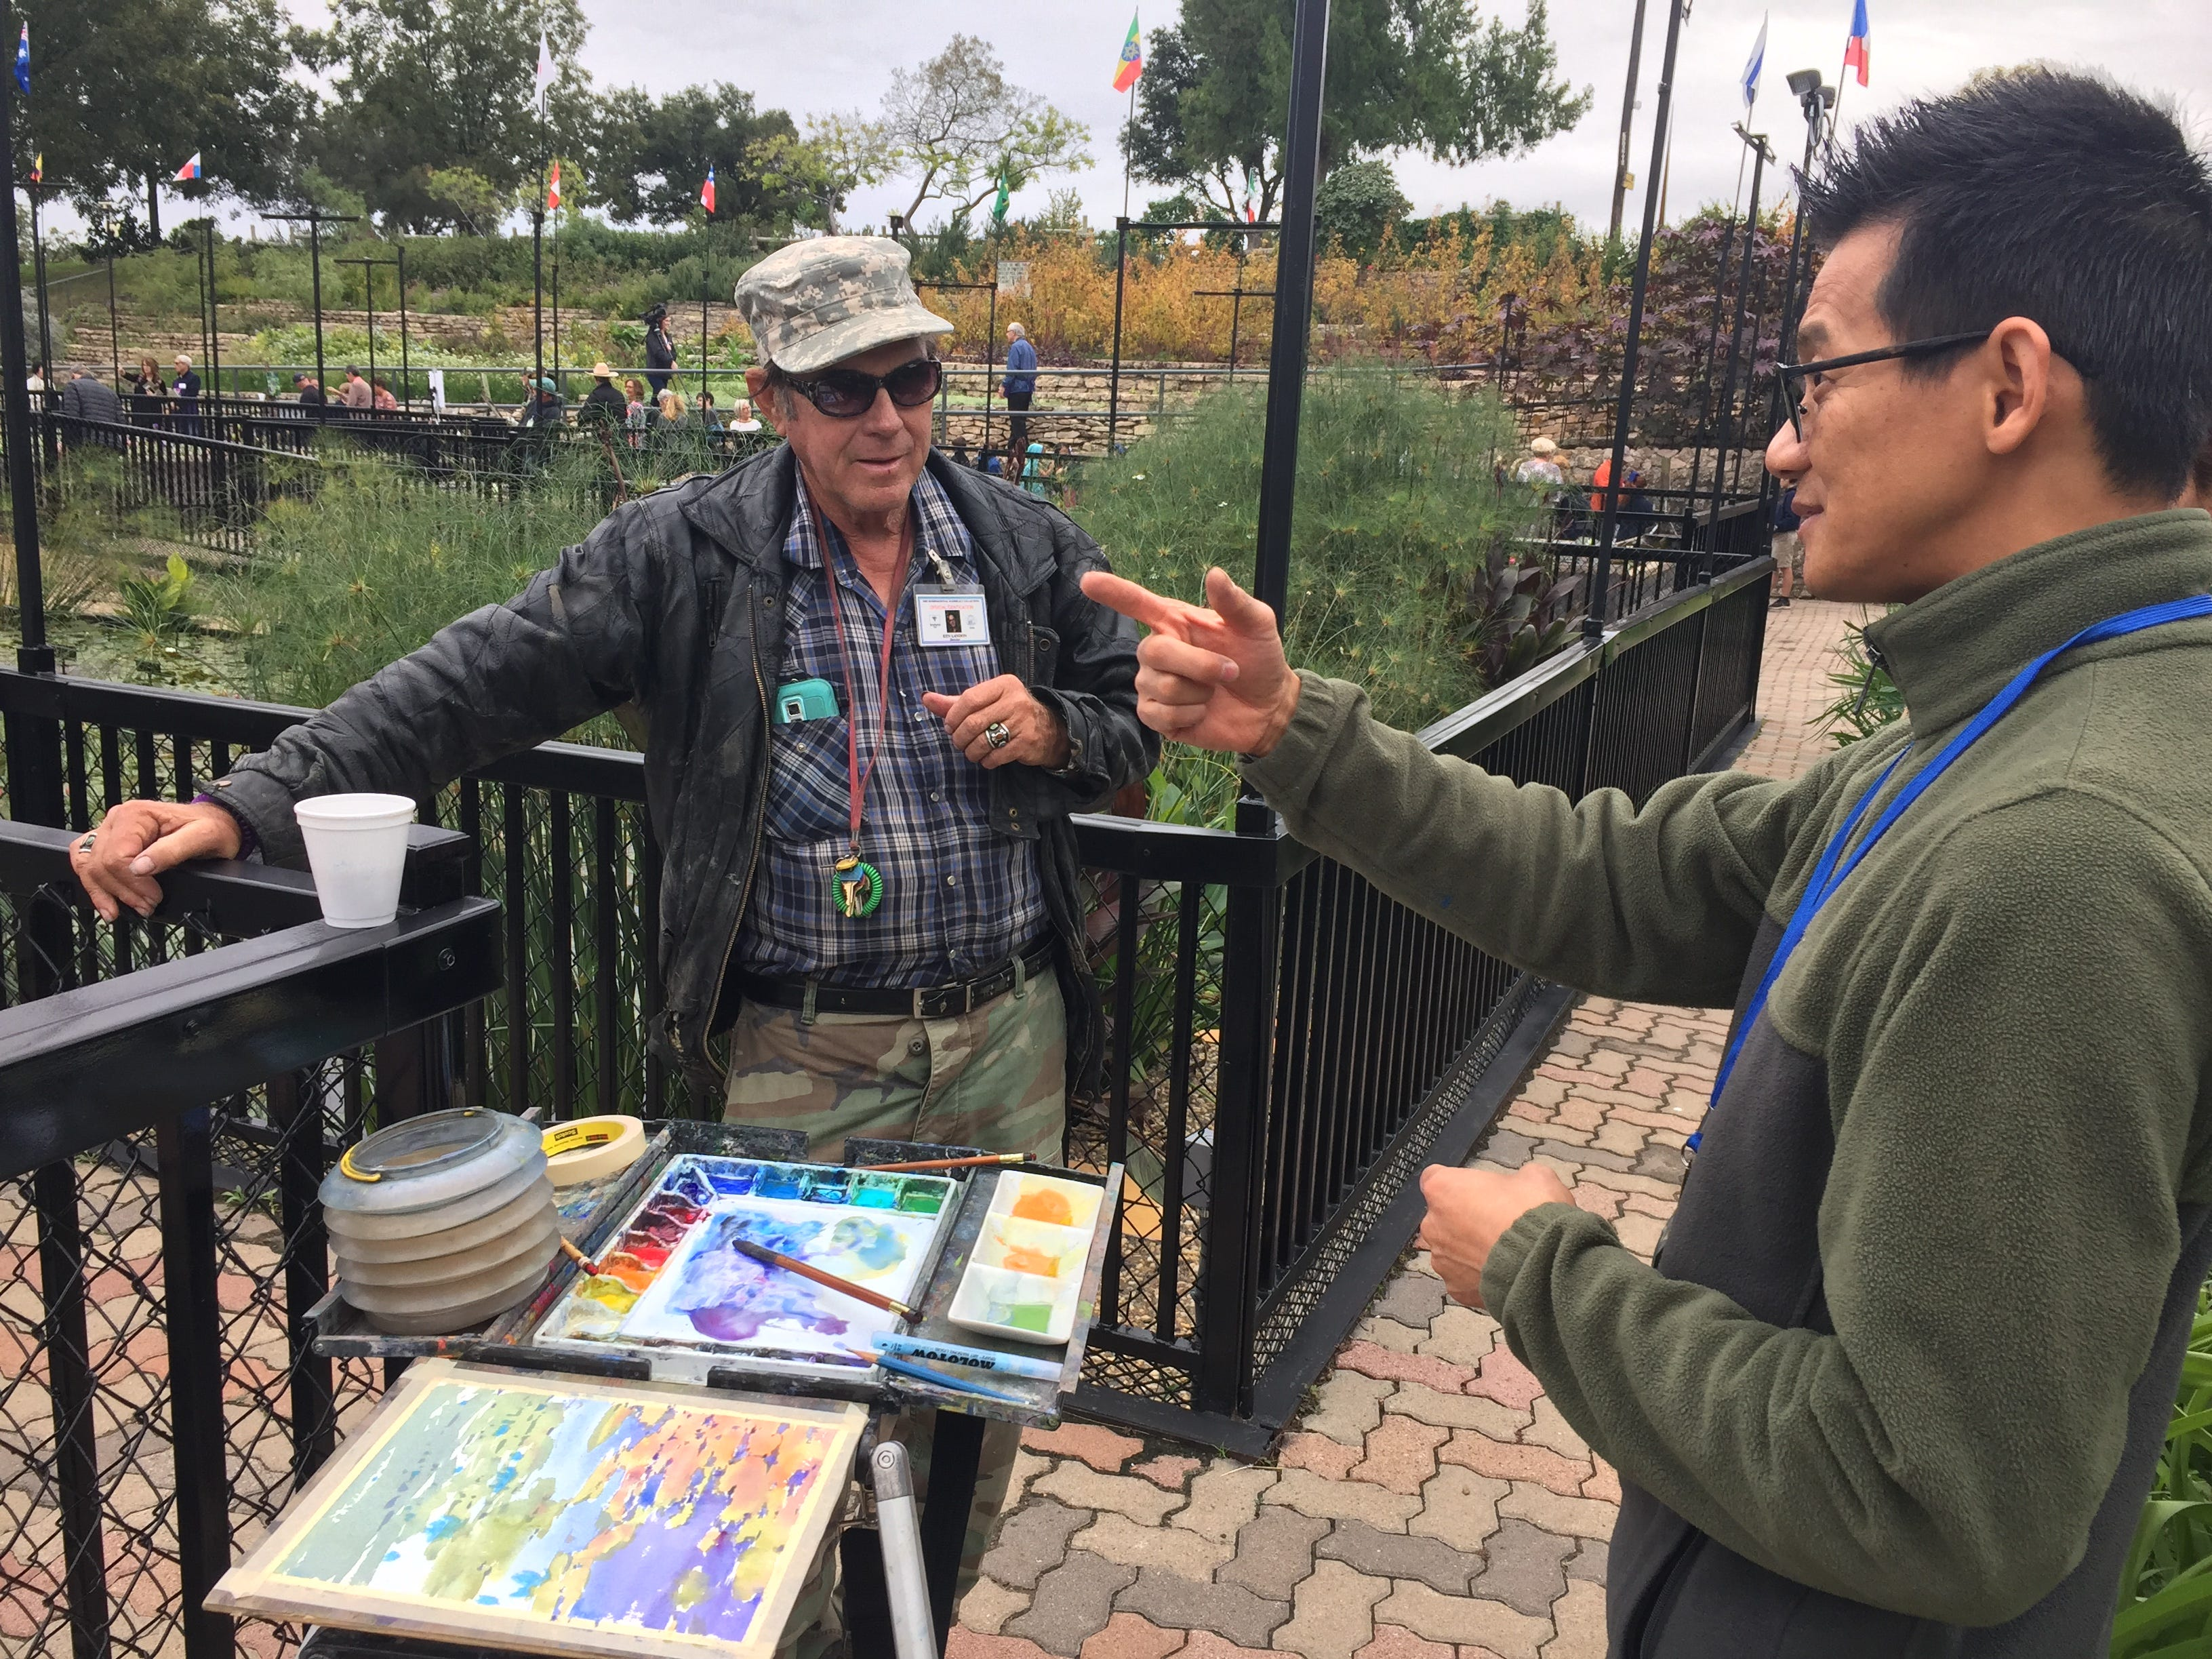 Ken Landon chats with artist Yong Hong Zhong during EnPleinAirTEXAS Tuesday, Oct. 23, 2018, at the International Waterlily Collection in the Civic League Park.